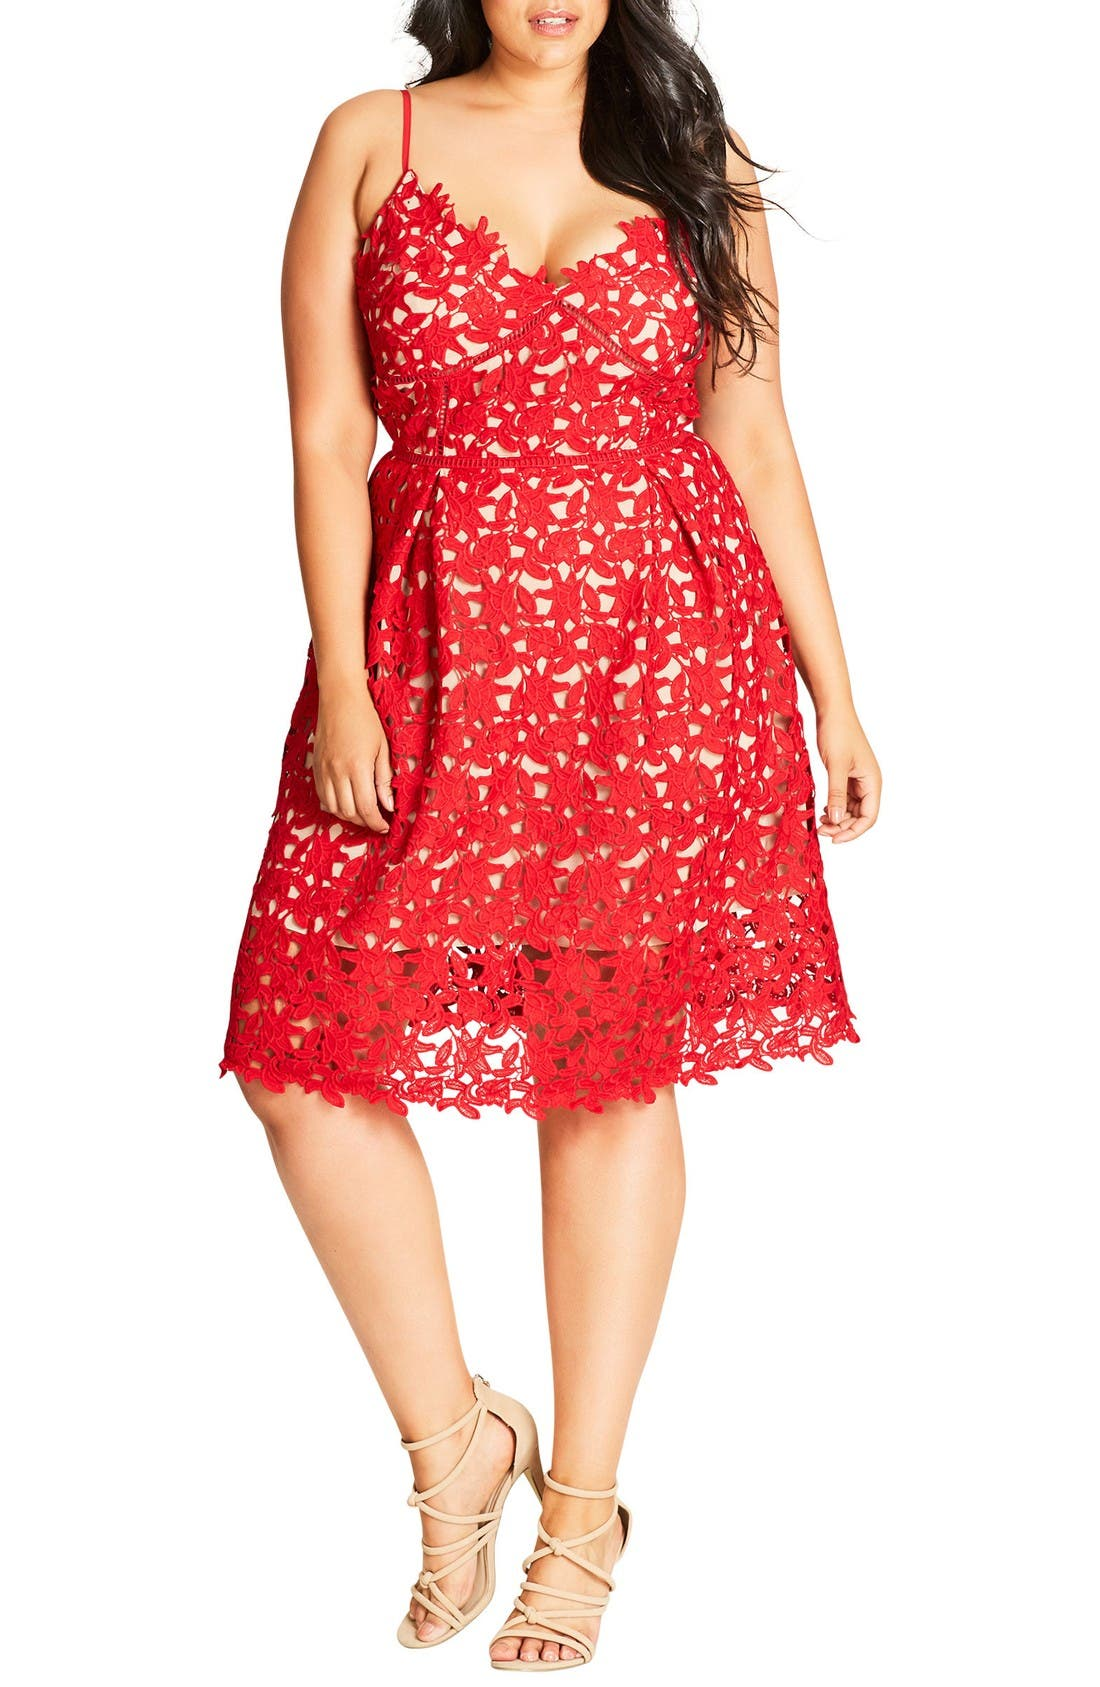 Alternate Image 1 Selected - City Chic So Fancy Lace Dress (Plus Size)